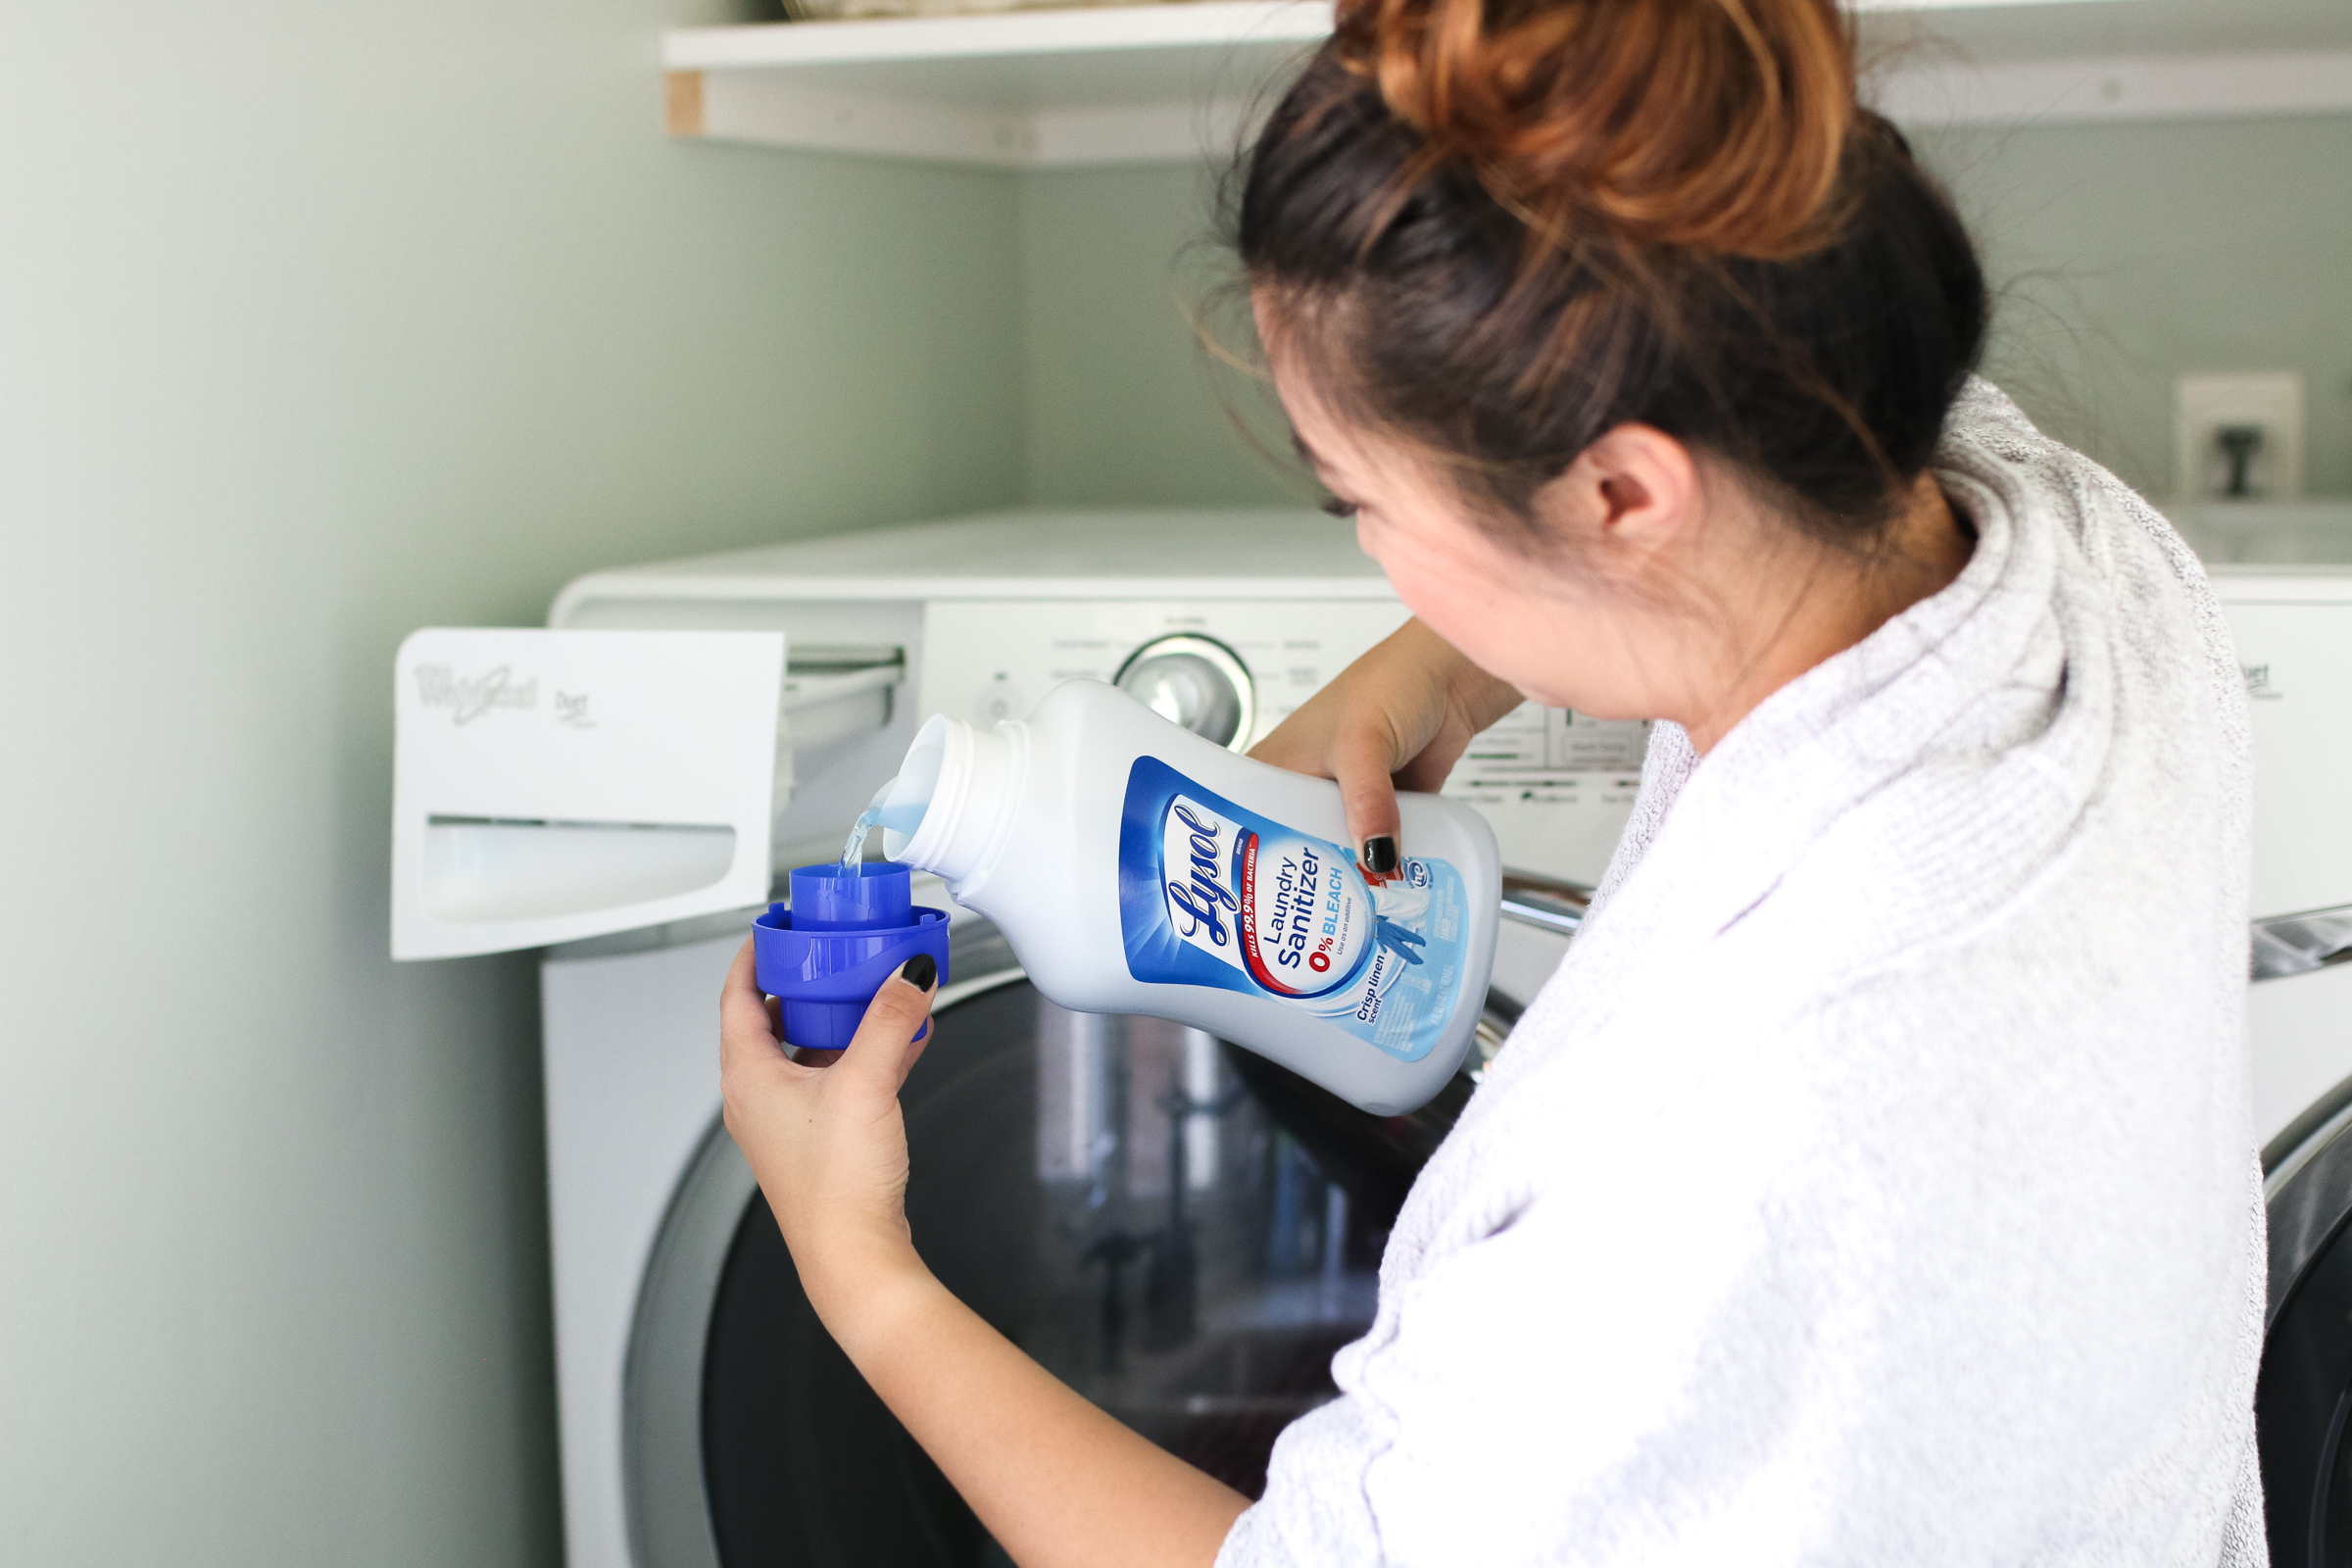 The Laundry Sanitizer Every Mom Needs by Utah mom blogger Sandy A La Mode